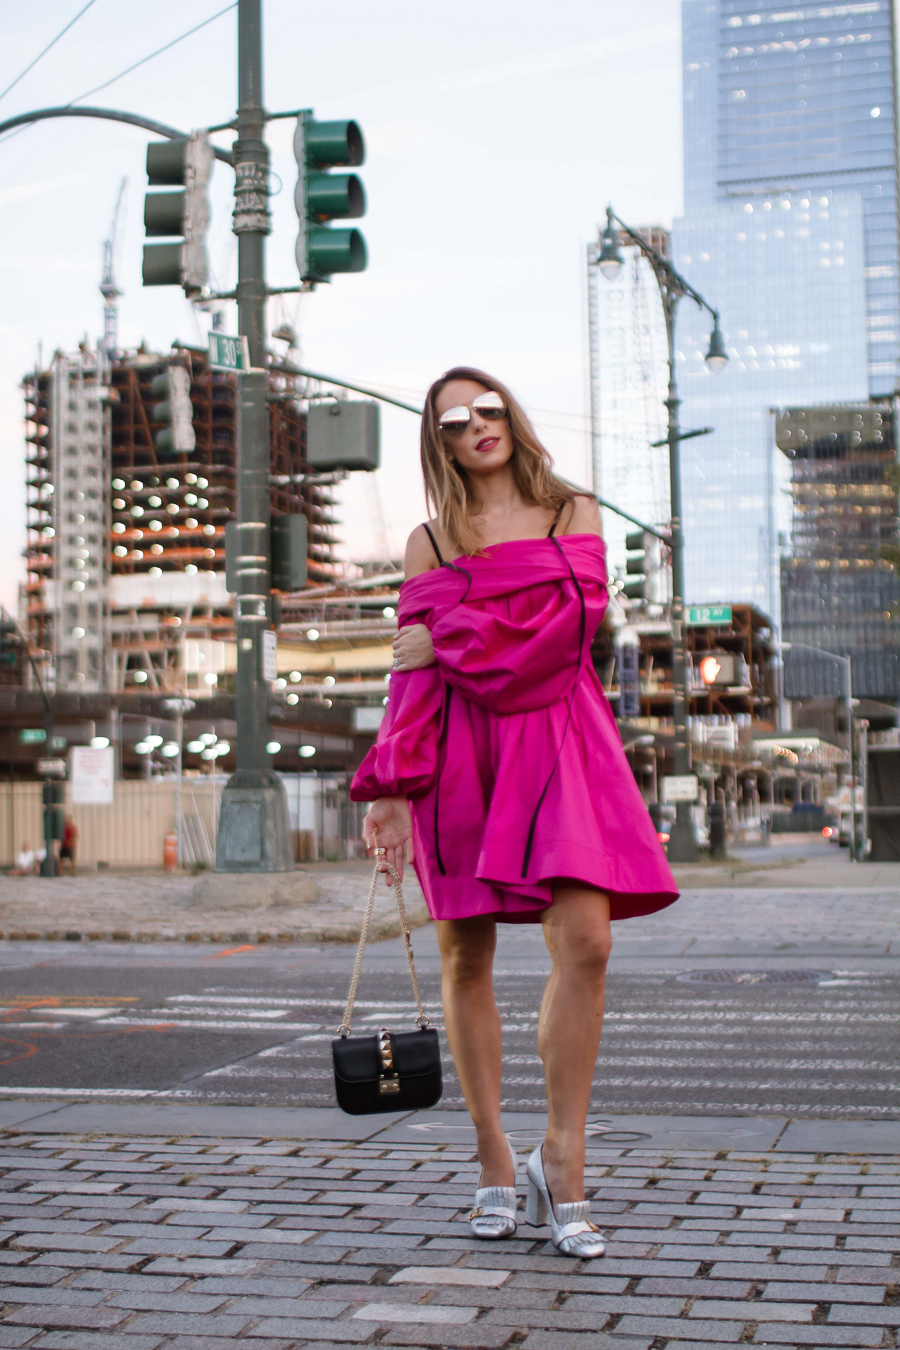 sabrina-chakici-clutch-and-carry-on-clutch-carry-on-uk-travel-blogger-nyfw-isa-arfen-pink-ress-gucci-silver-shoes-net-a-porter-helicopter-9